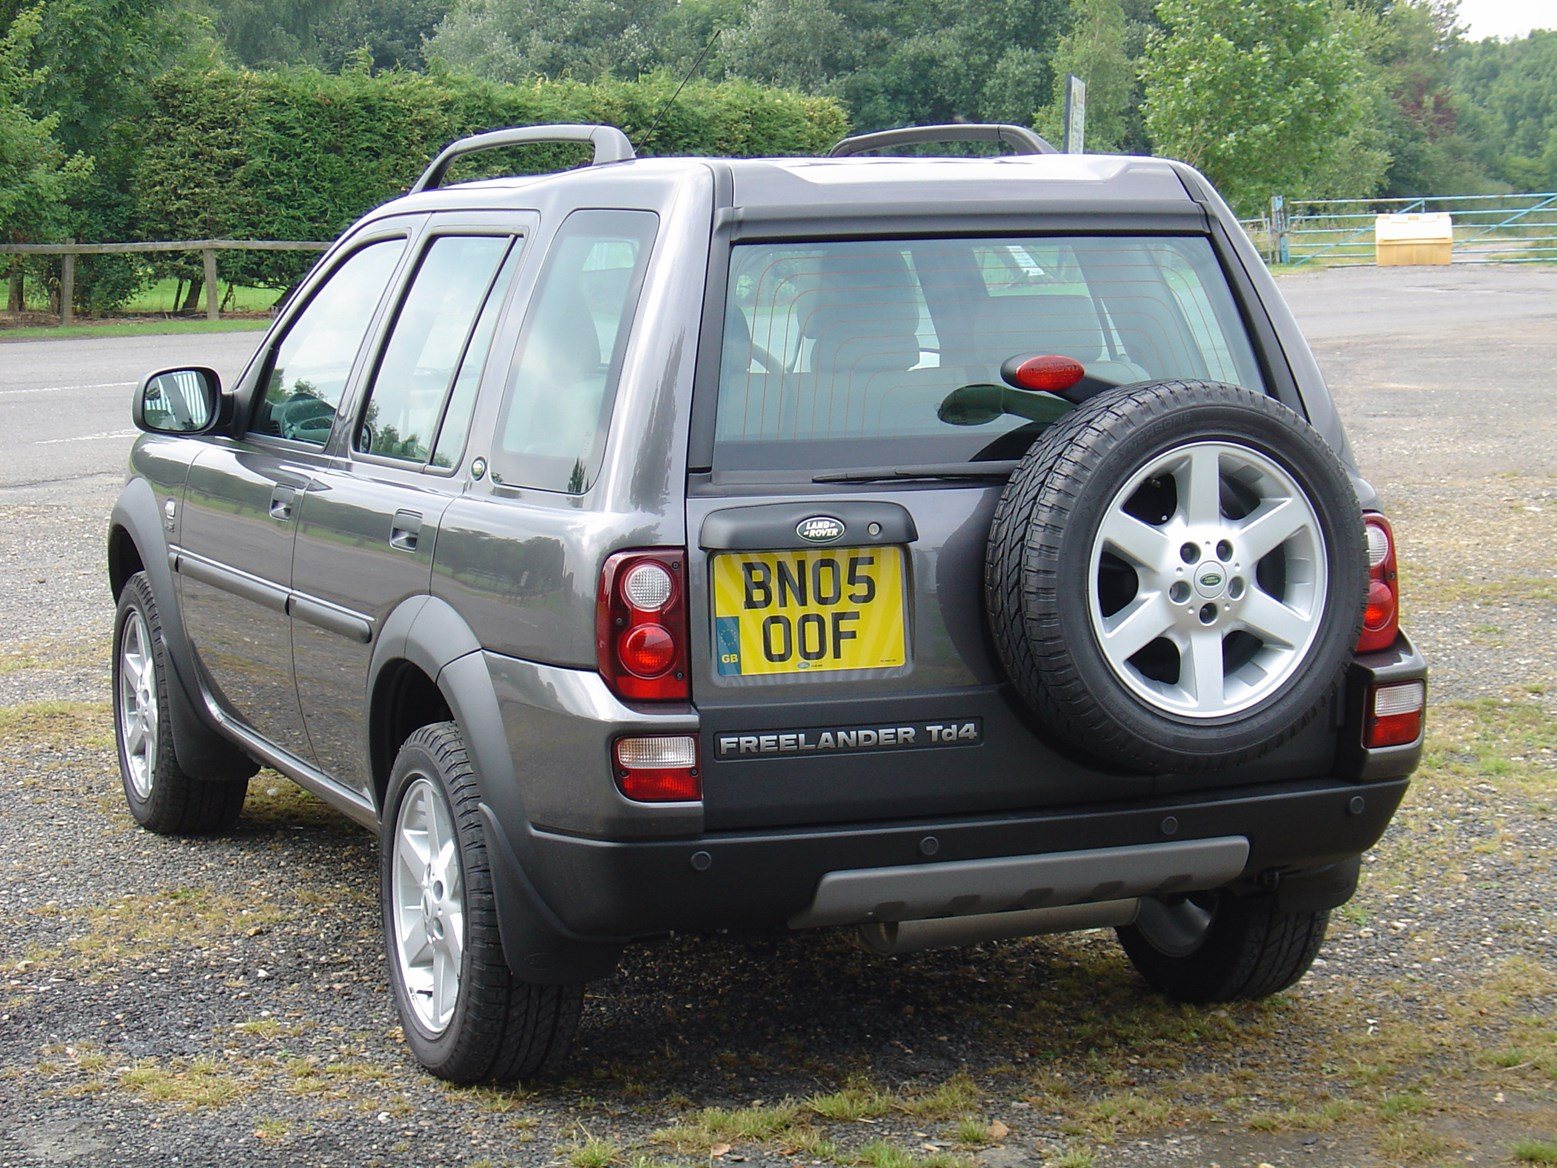 Used Land Rover Freelander Station Wagon 2003 2006